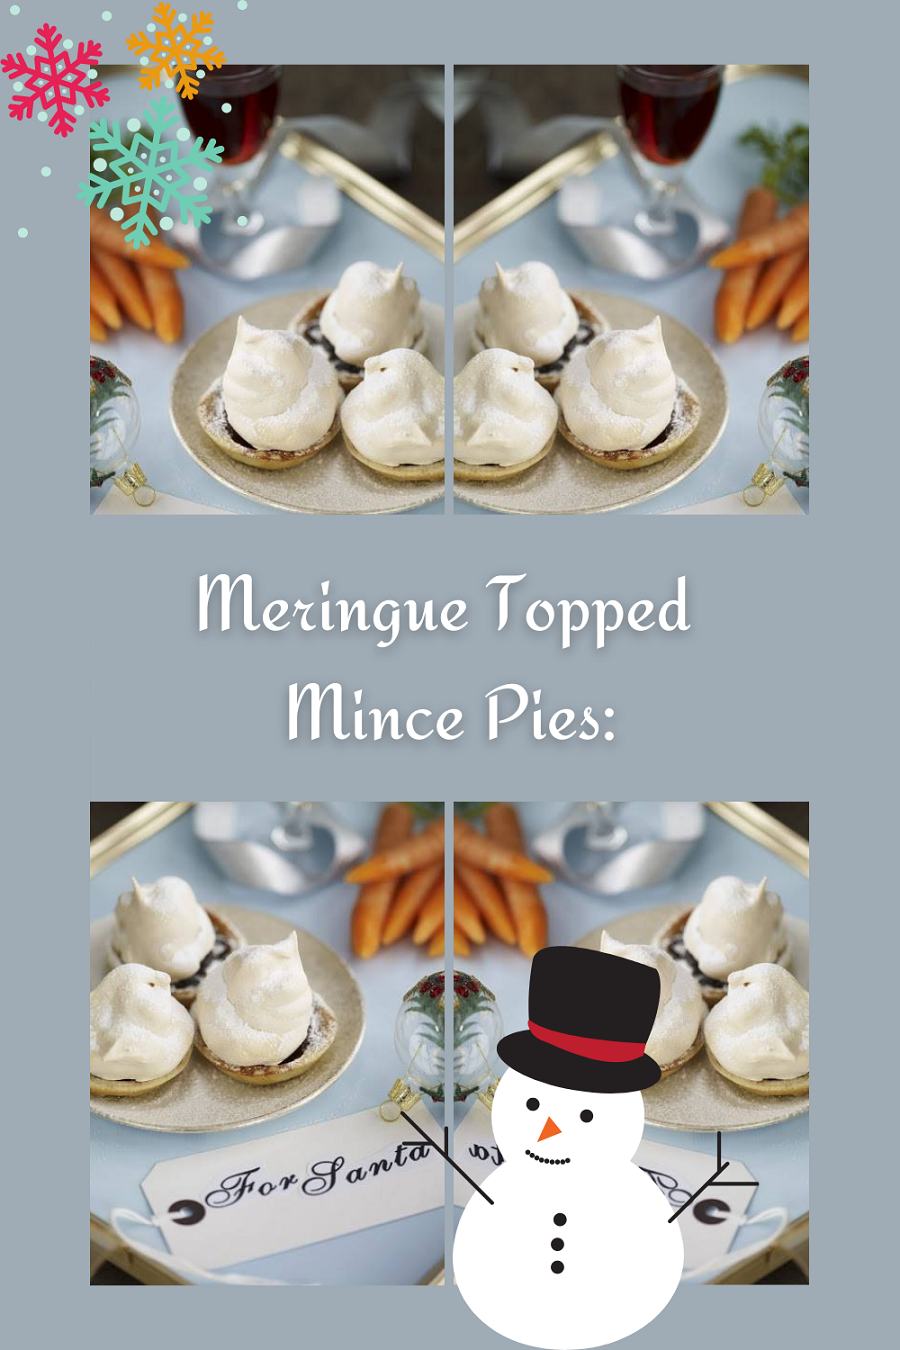 Meringue Topped Mince Pies: One Or Two For Santa